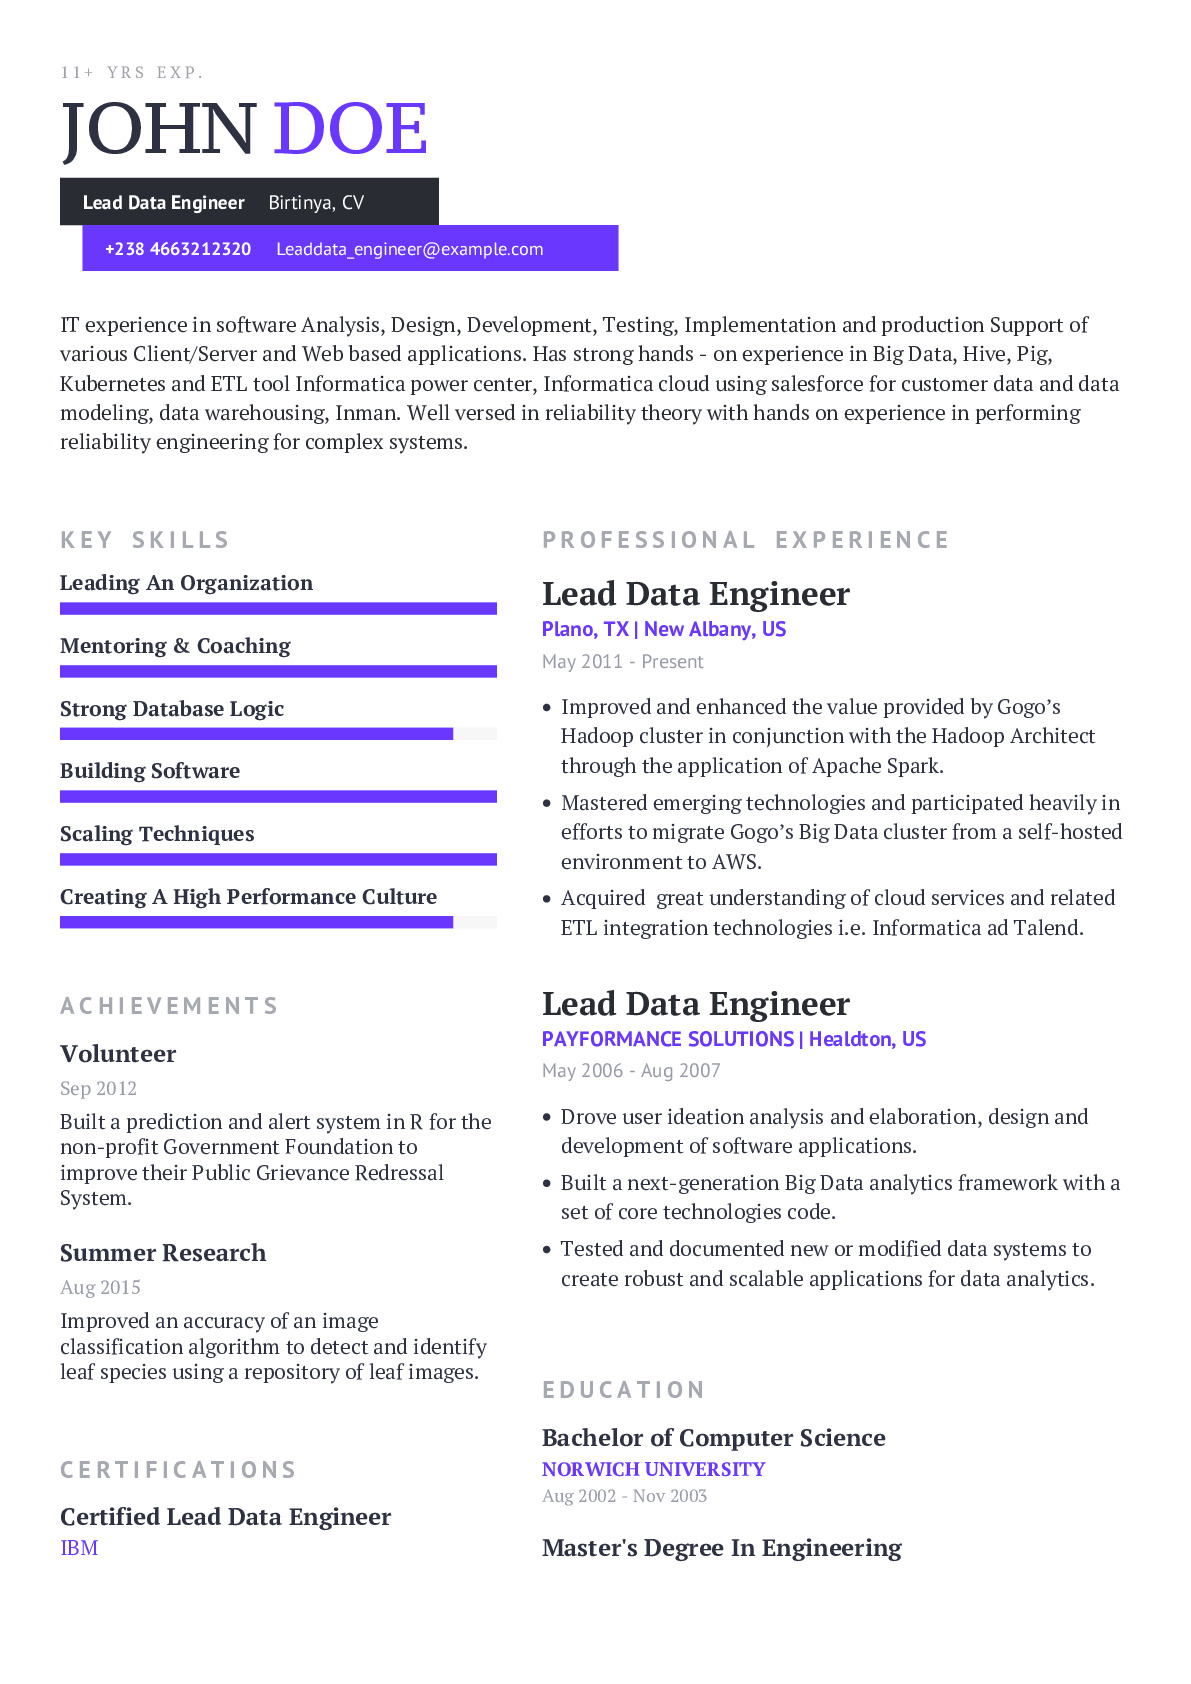 Lead Data Engineer Resume Example With Content Sample Craftmycv